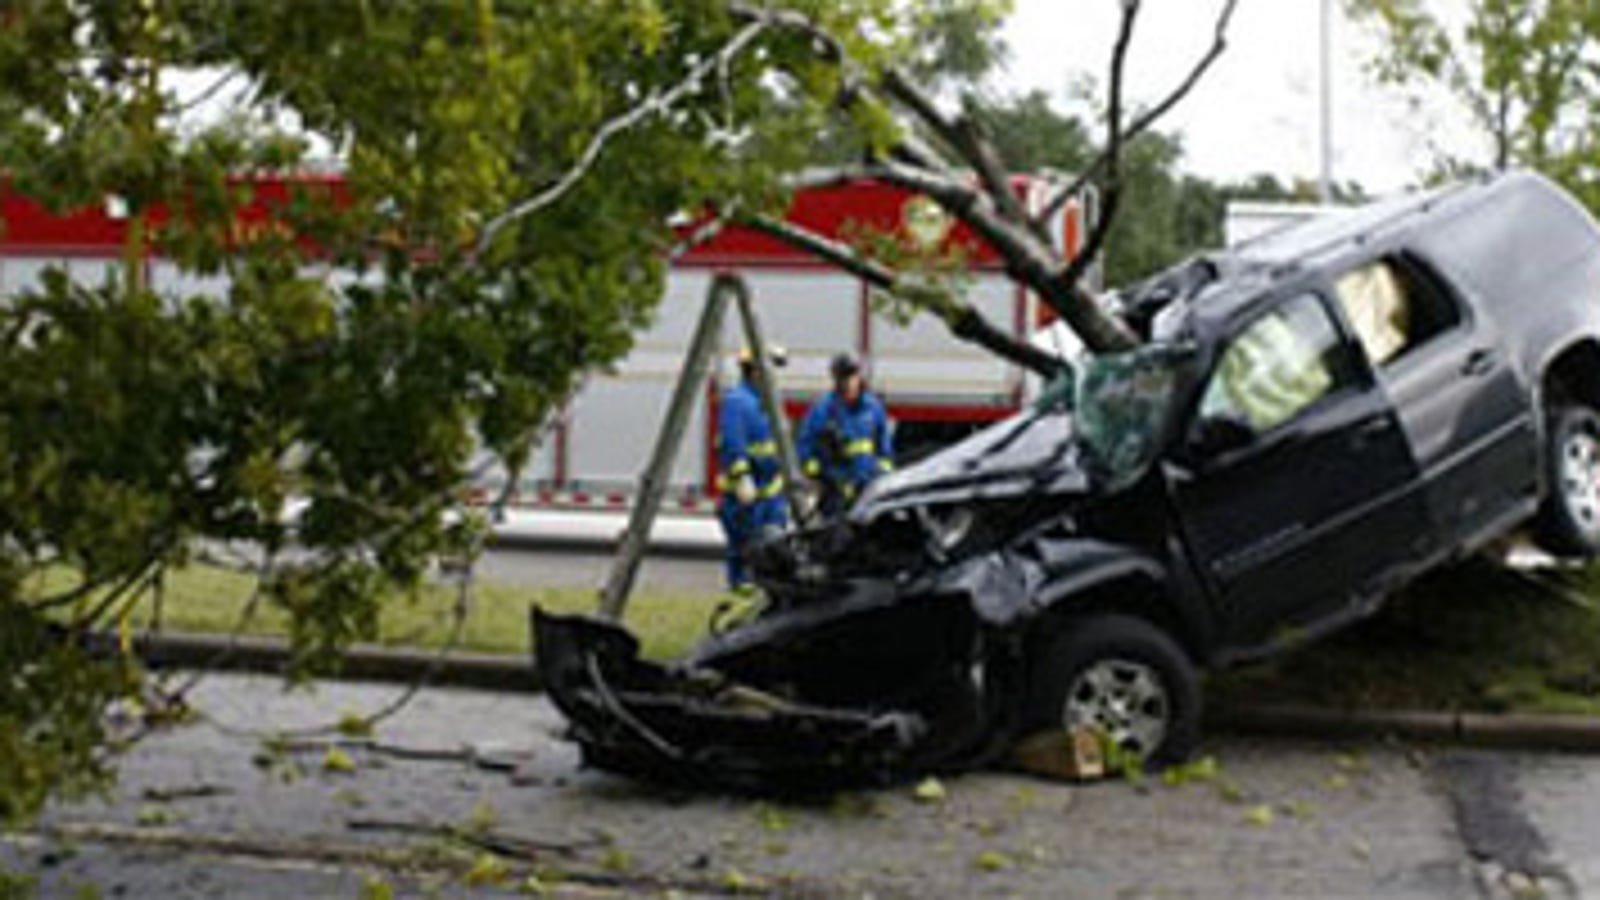 Car Accident Settlement >> John O'Quinn, Lawyer And Car Collector, Killed In Accident